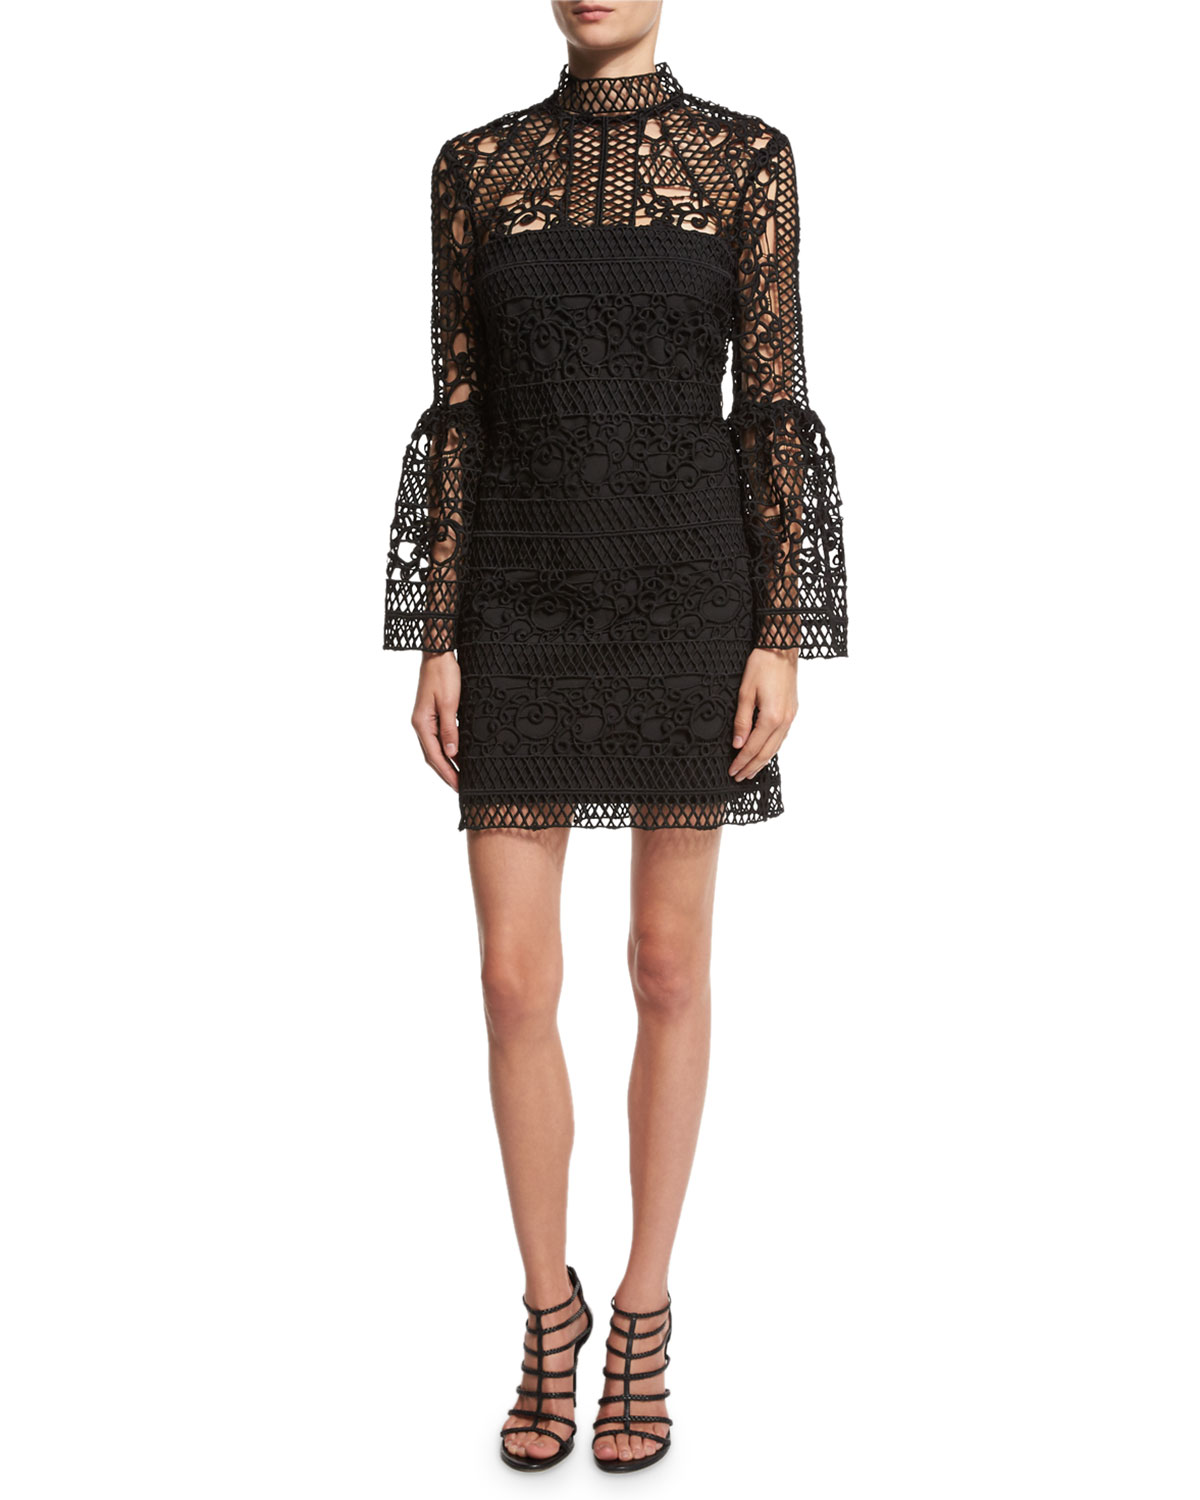 Crocheted Lace Mock-Neck Cocktail Dress, Black